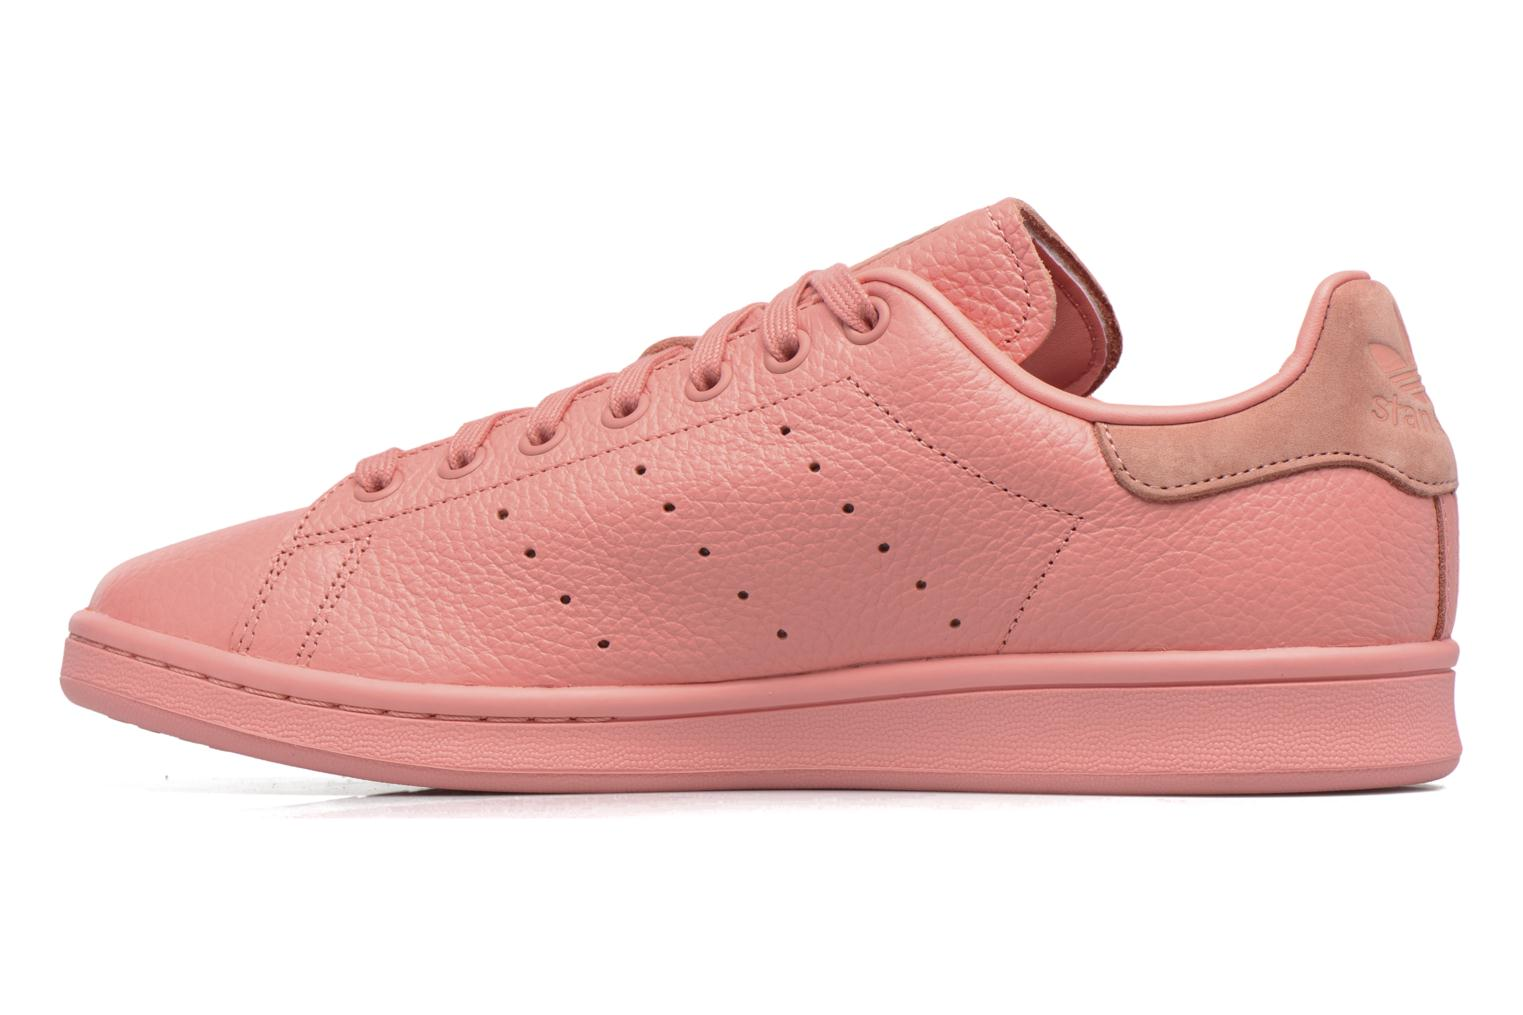 Stan Smith Rostac/Rostac/Roscru